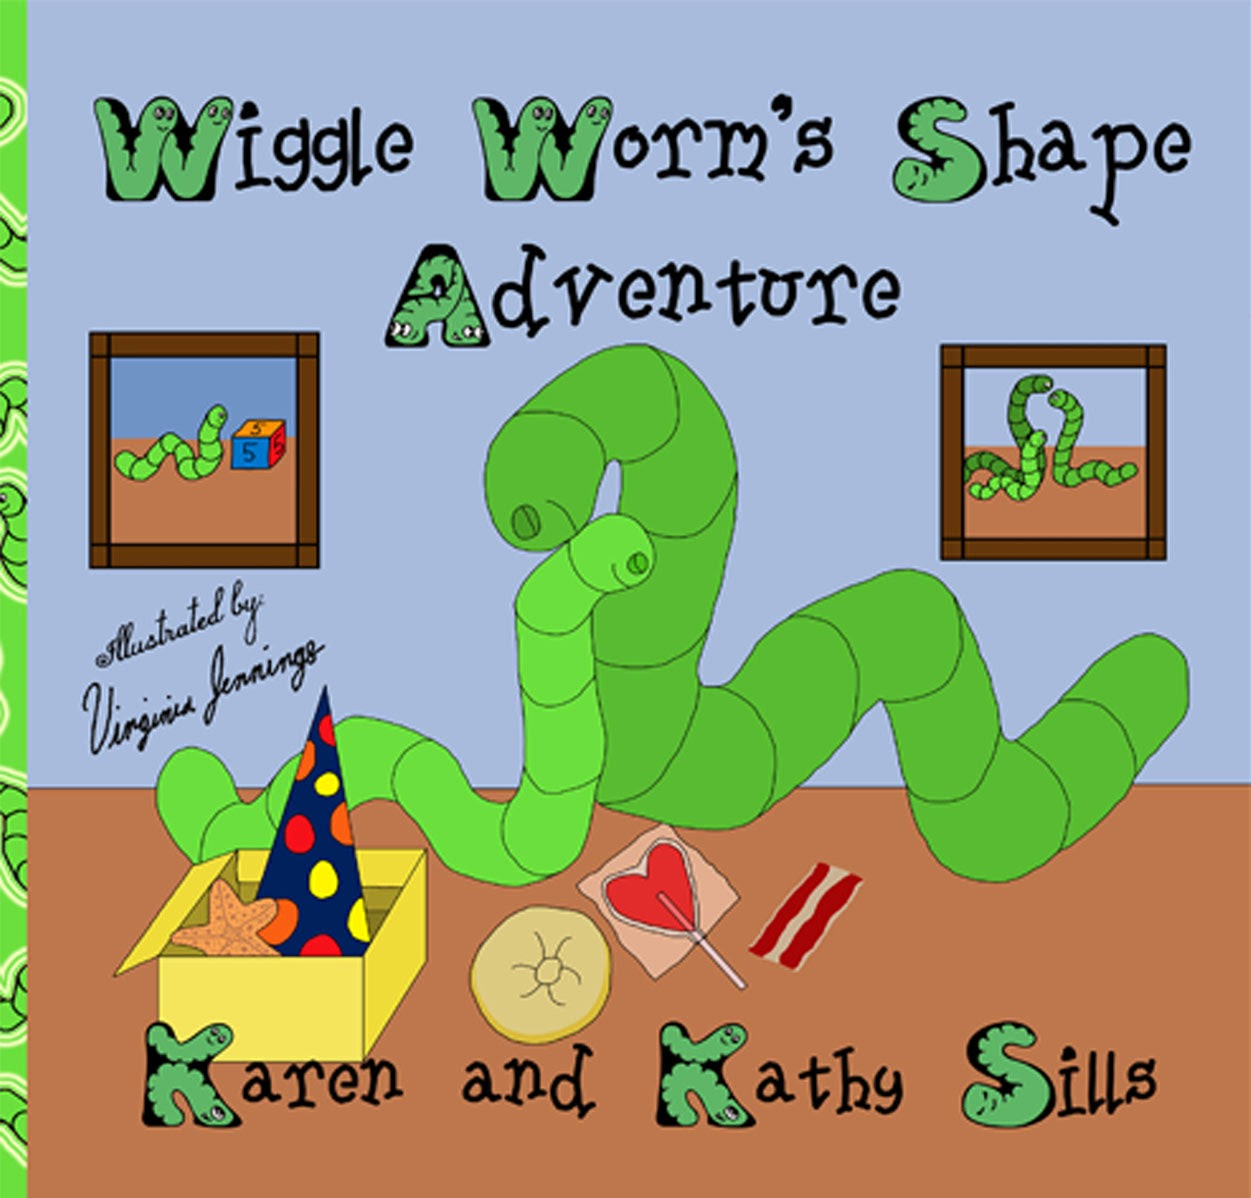 Wiggle Worm's Shape Adventure